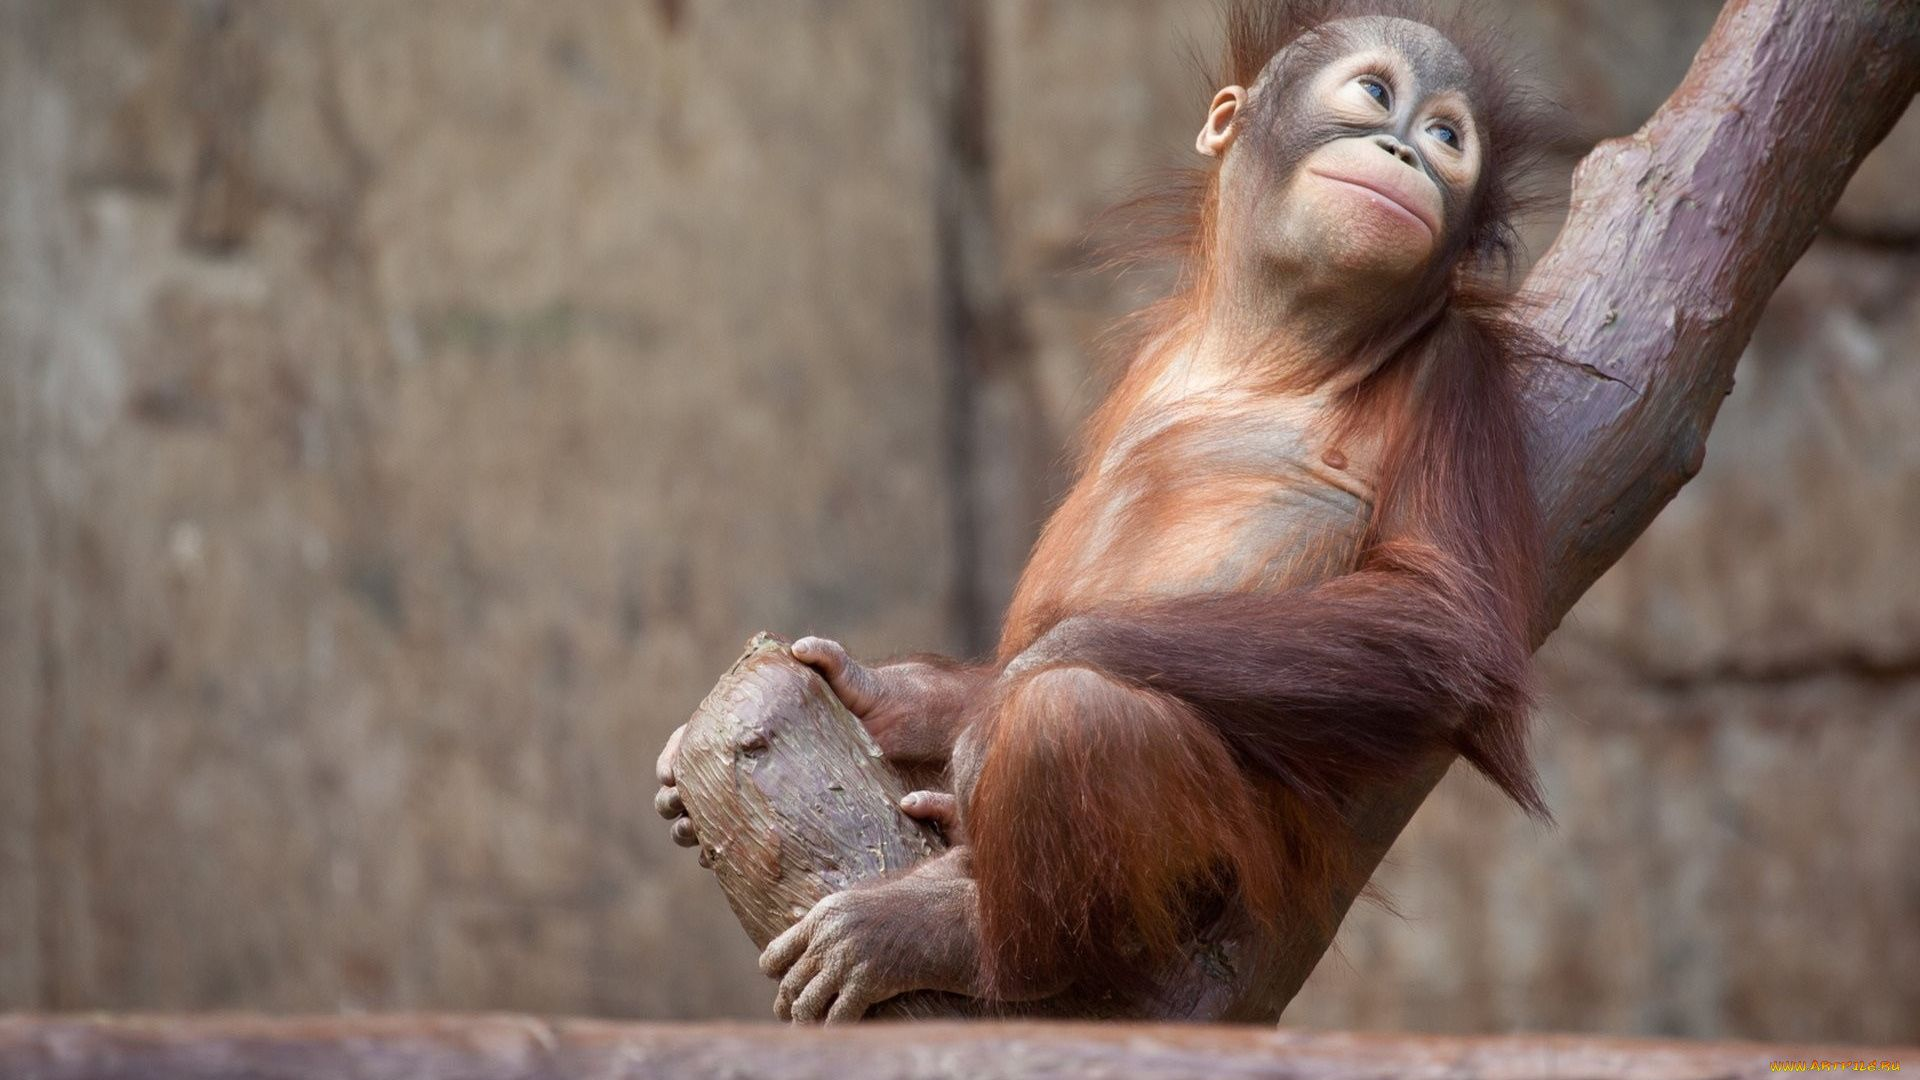 The Orangutan Is A Picture Of